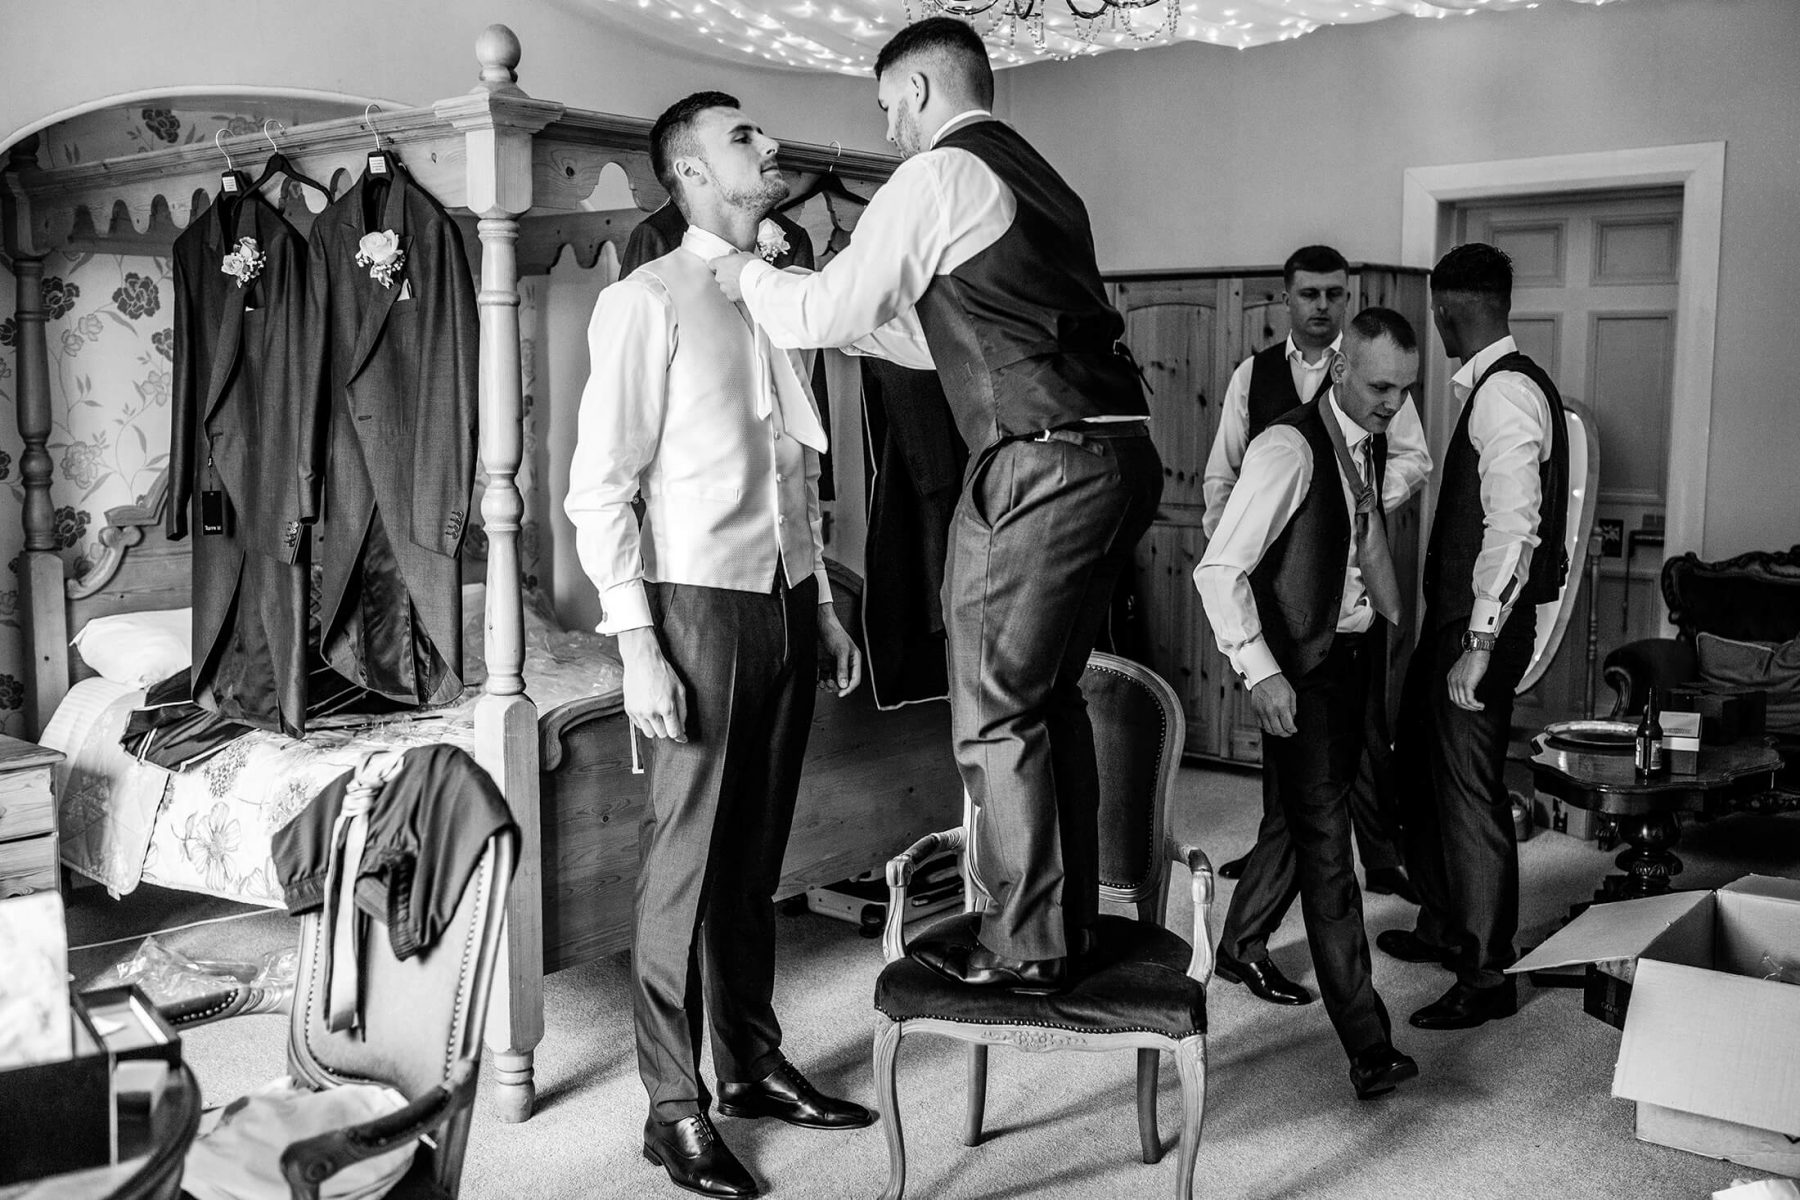 A groom is helped with his suit